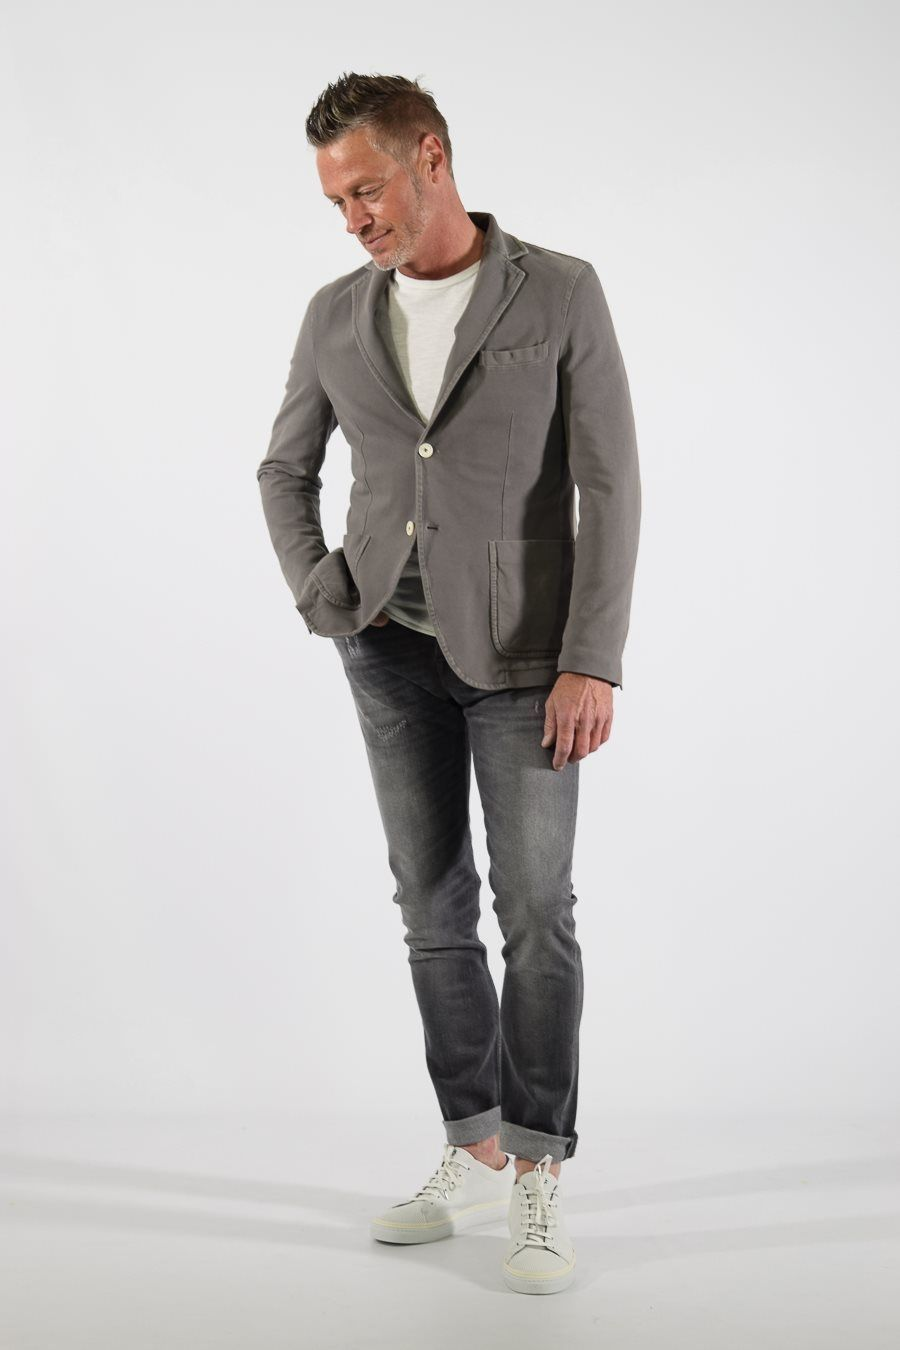 - 92% cotton 8% elasthan - tricot blazer - casual chique